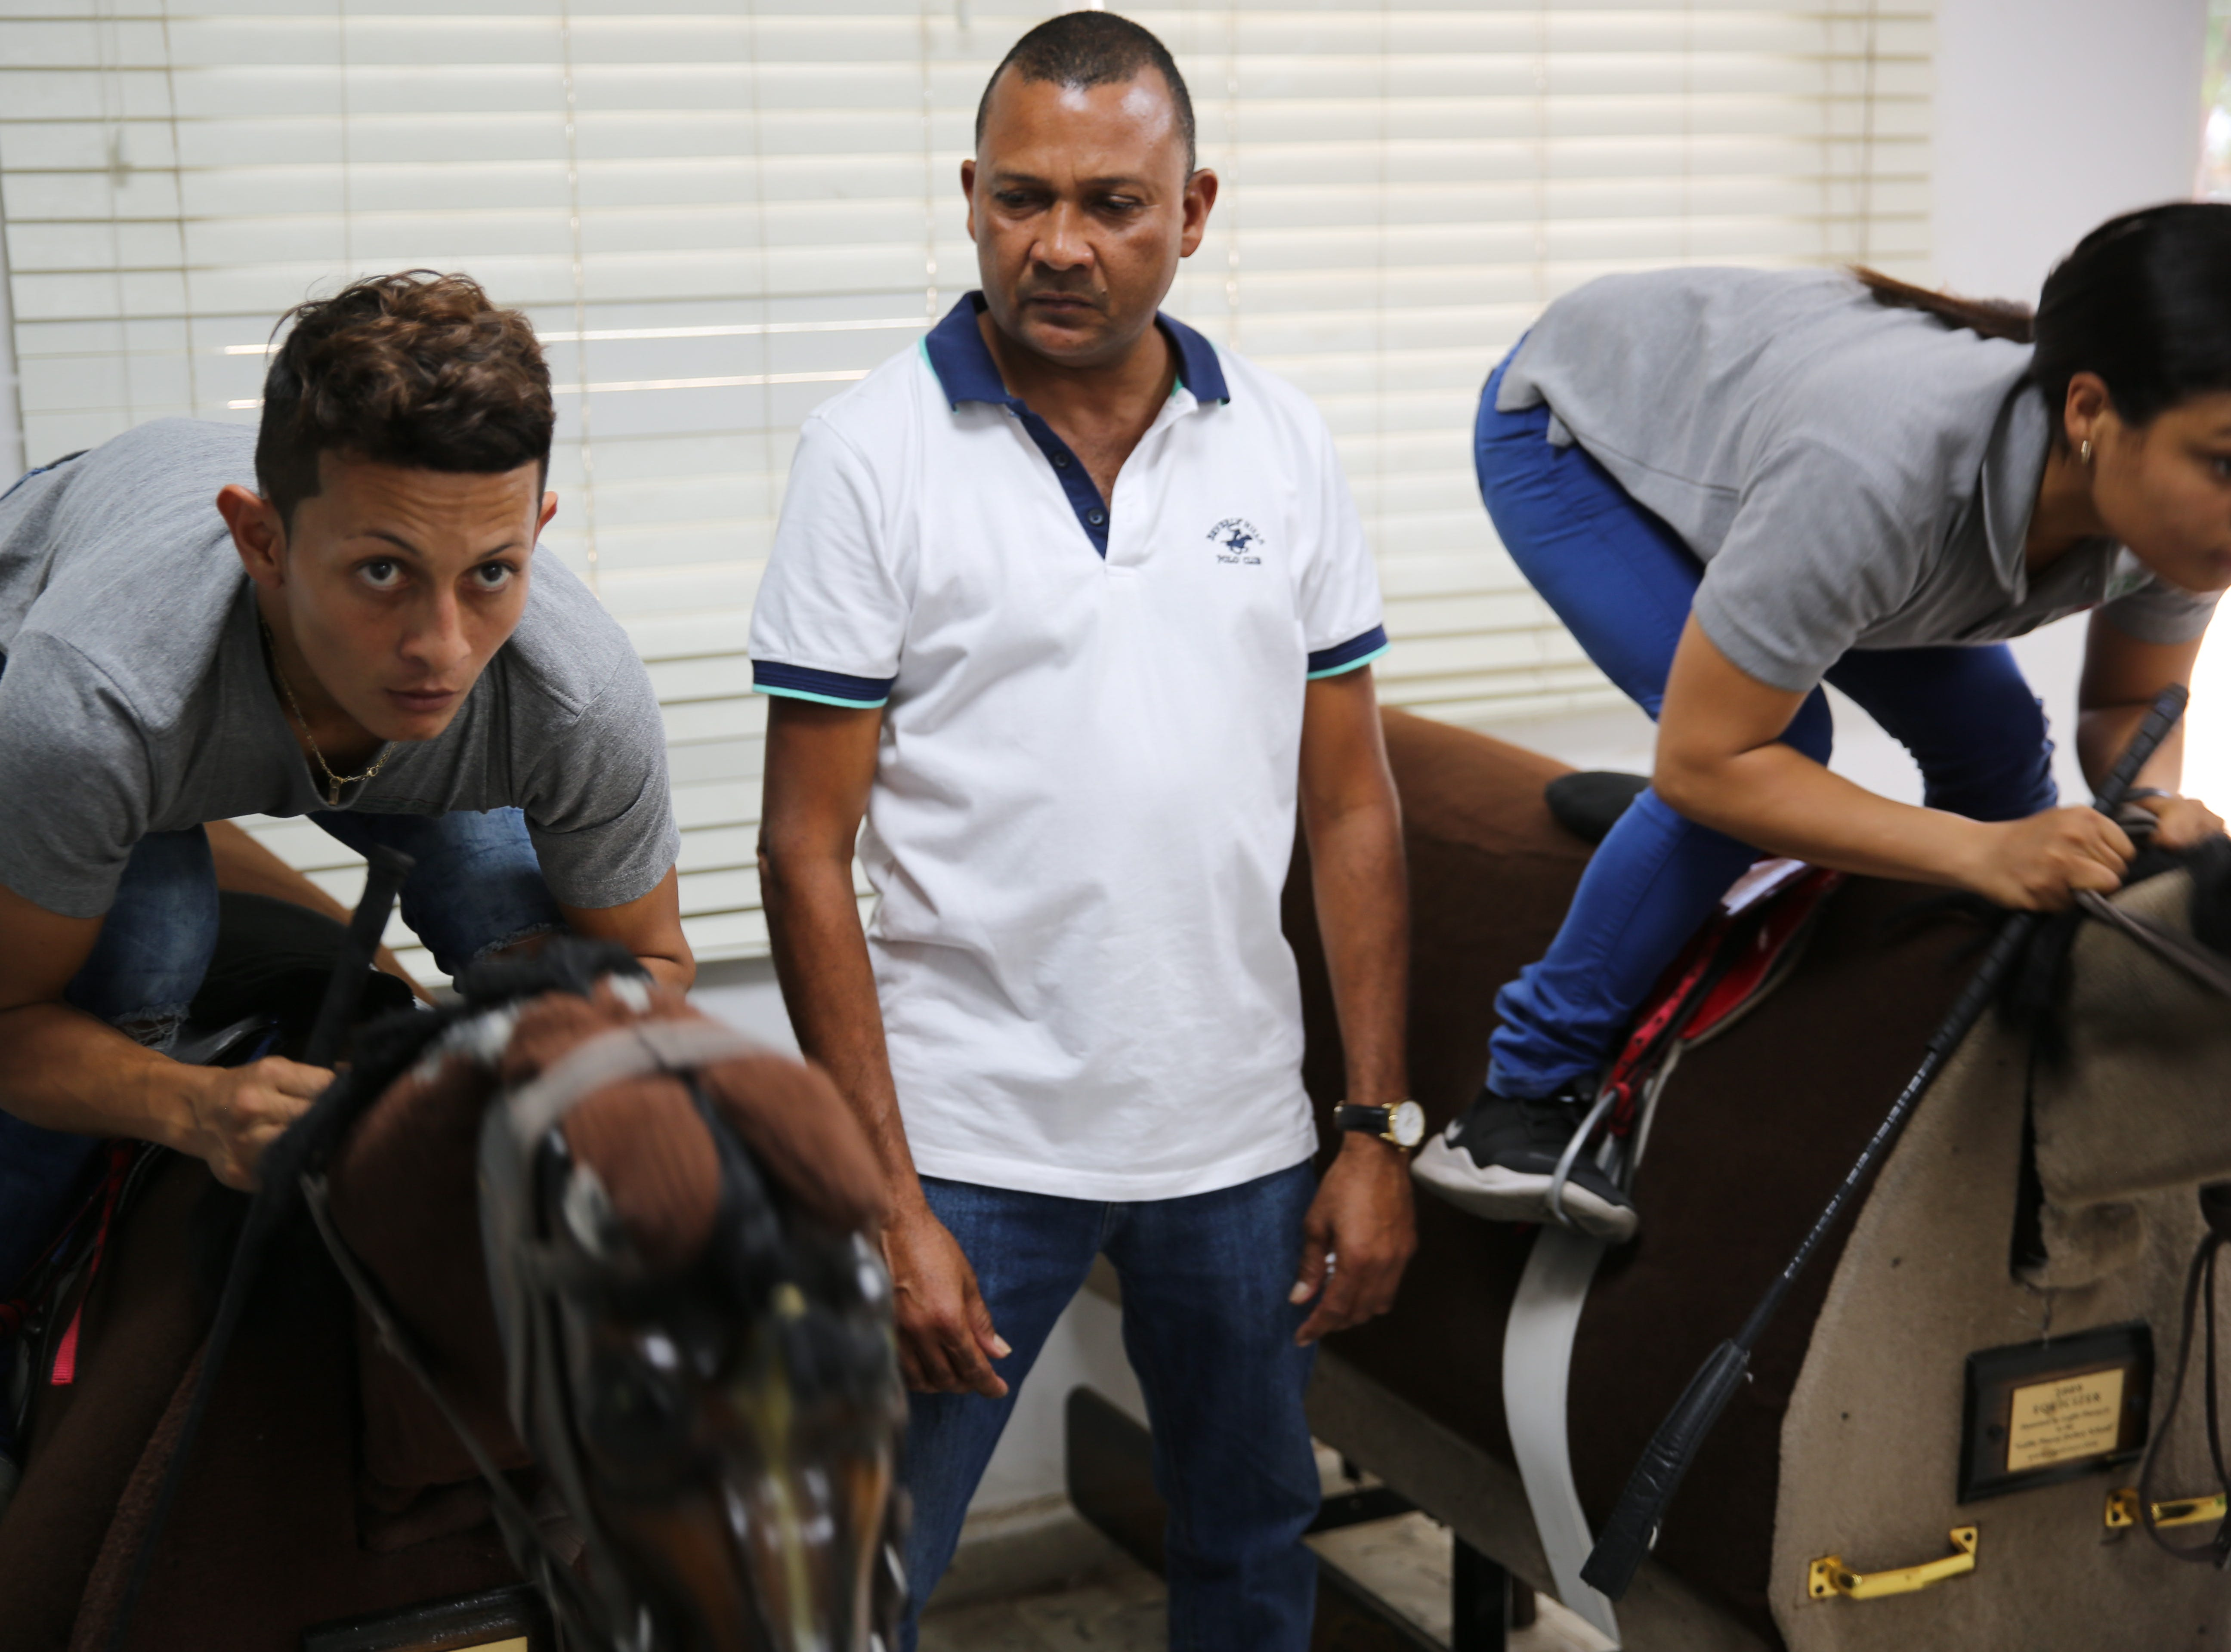 In Panama, known as the 'Cradle of the best jockeys in the world,' the Laffit Pincay Jr. Technical Jockey Training Academy has changed lives and produced some top thoroughbred riders. The famed school, opened in 1960, is located just outside of the country's only racetrack. .